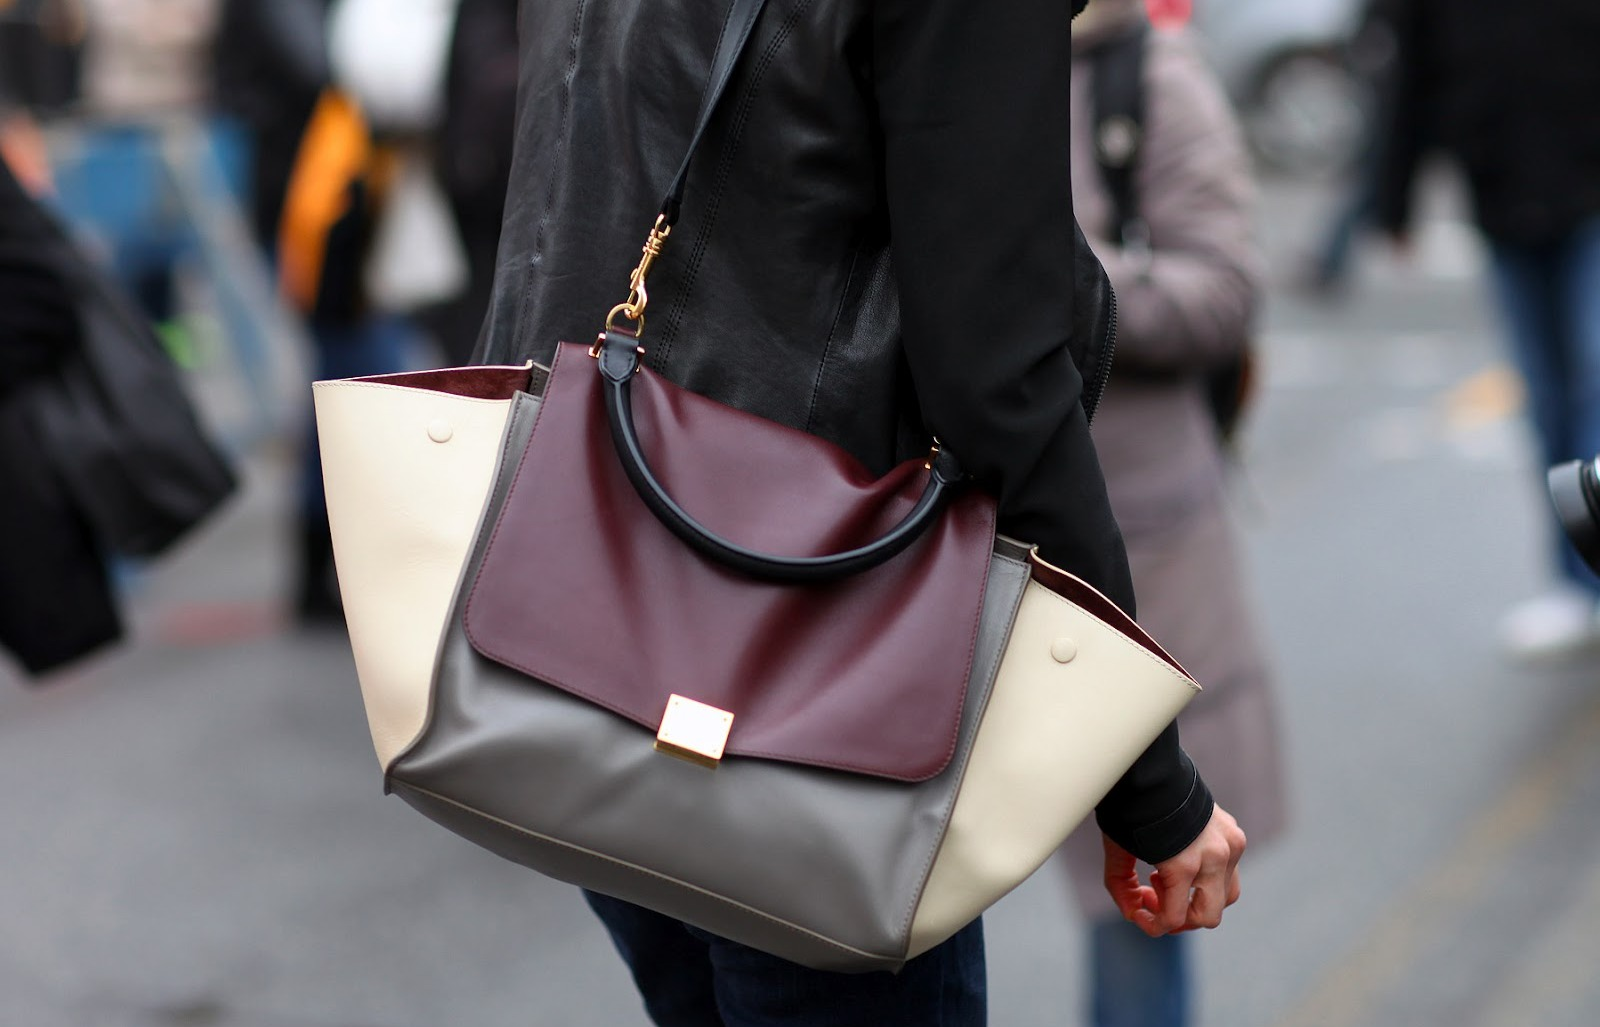 street-style-bags-inspiration-for-your-elegant-spring-accessories